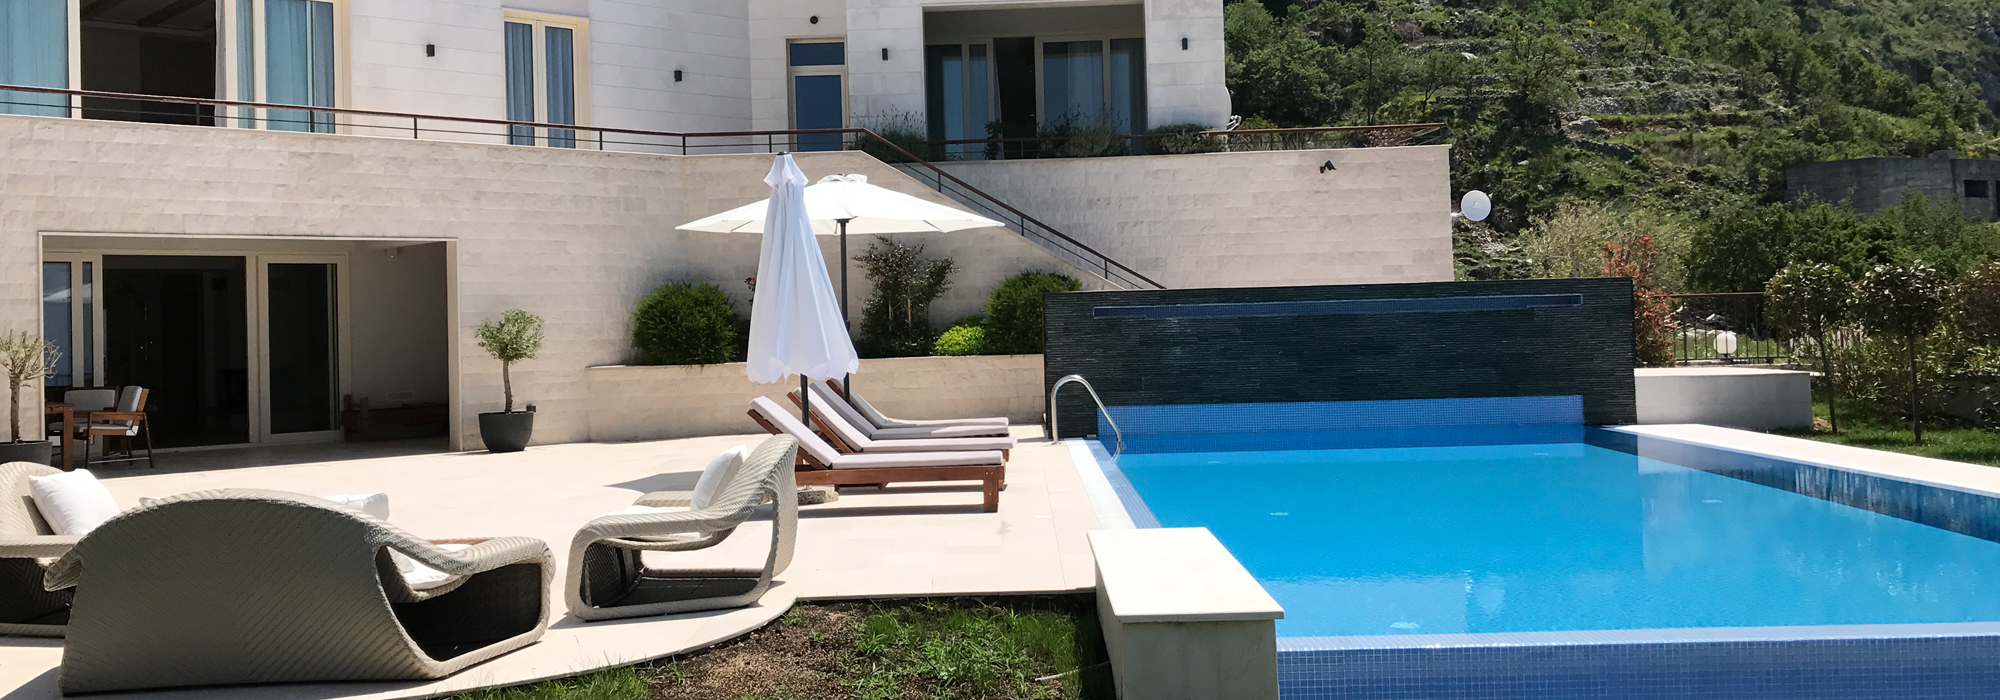 Exclusive new family villa Blizikuce, Budva